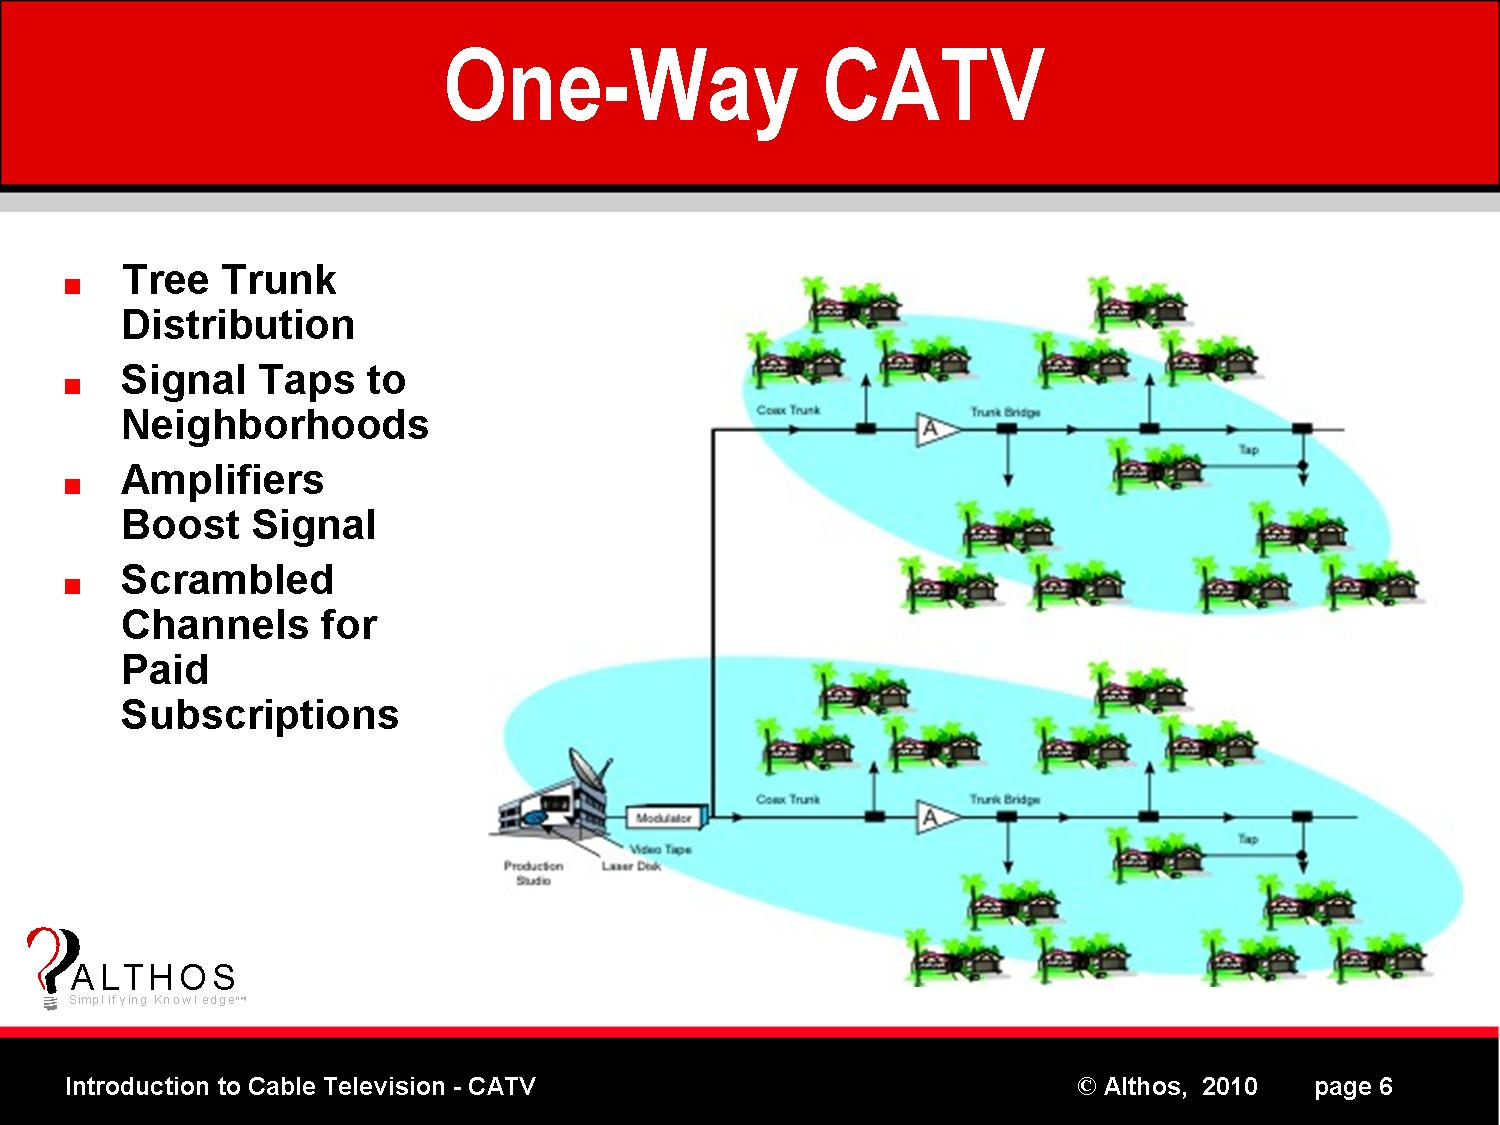 Introduction To CATV One Way Cable TV System